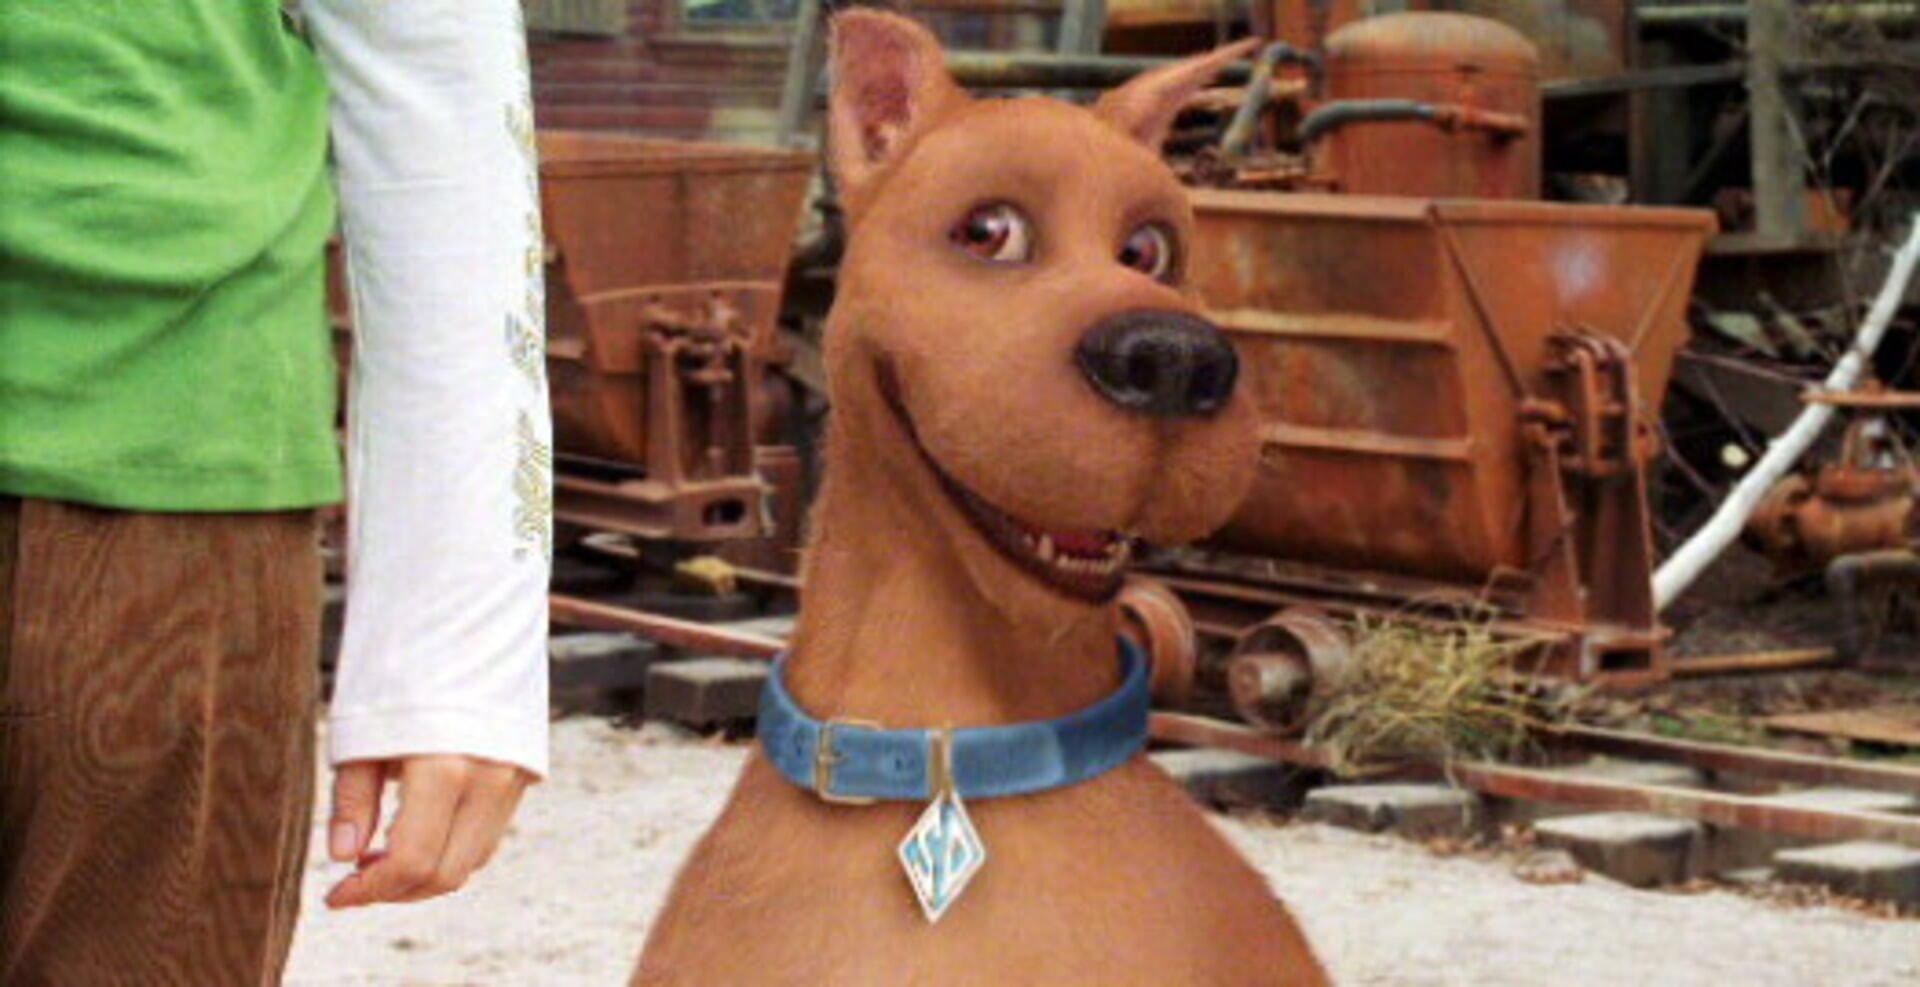 Scooby-doo 2: Monsters Unleashed - Image 17